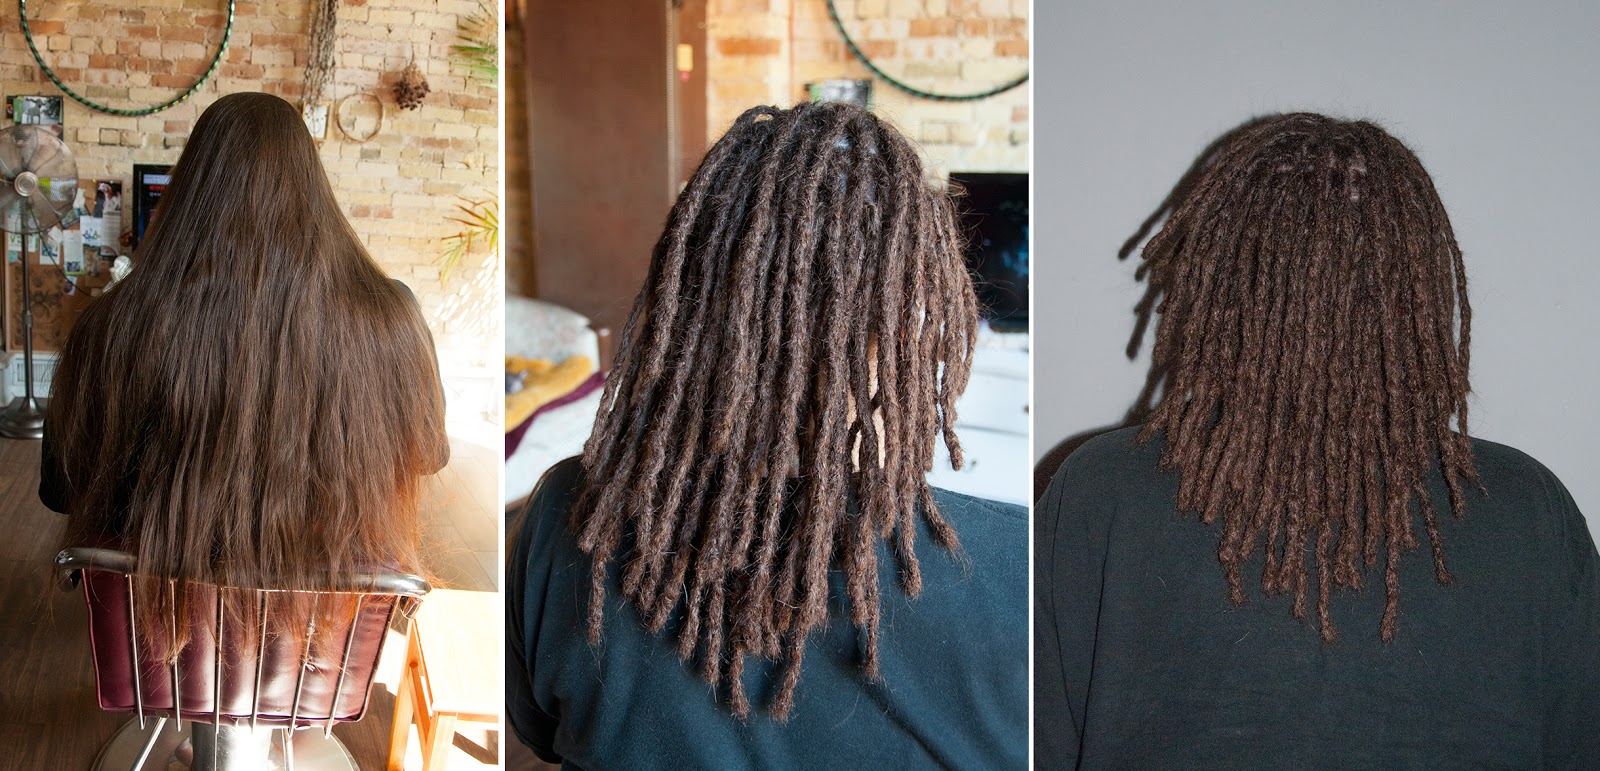 Lunar Dreadlocks